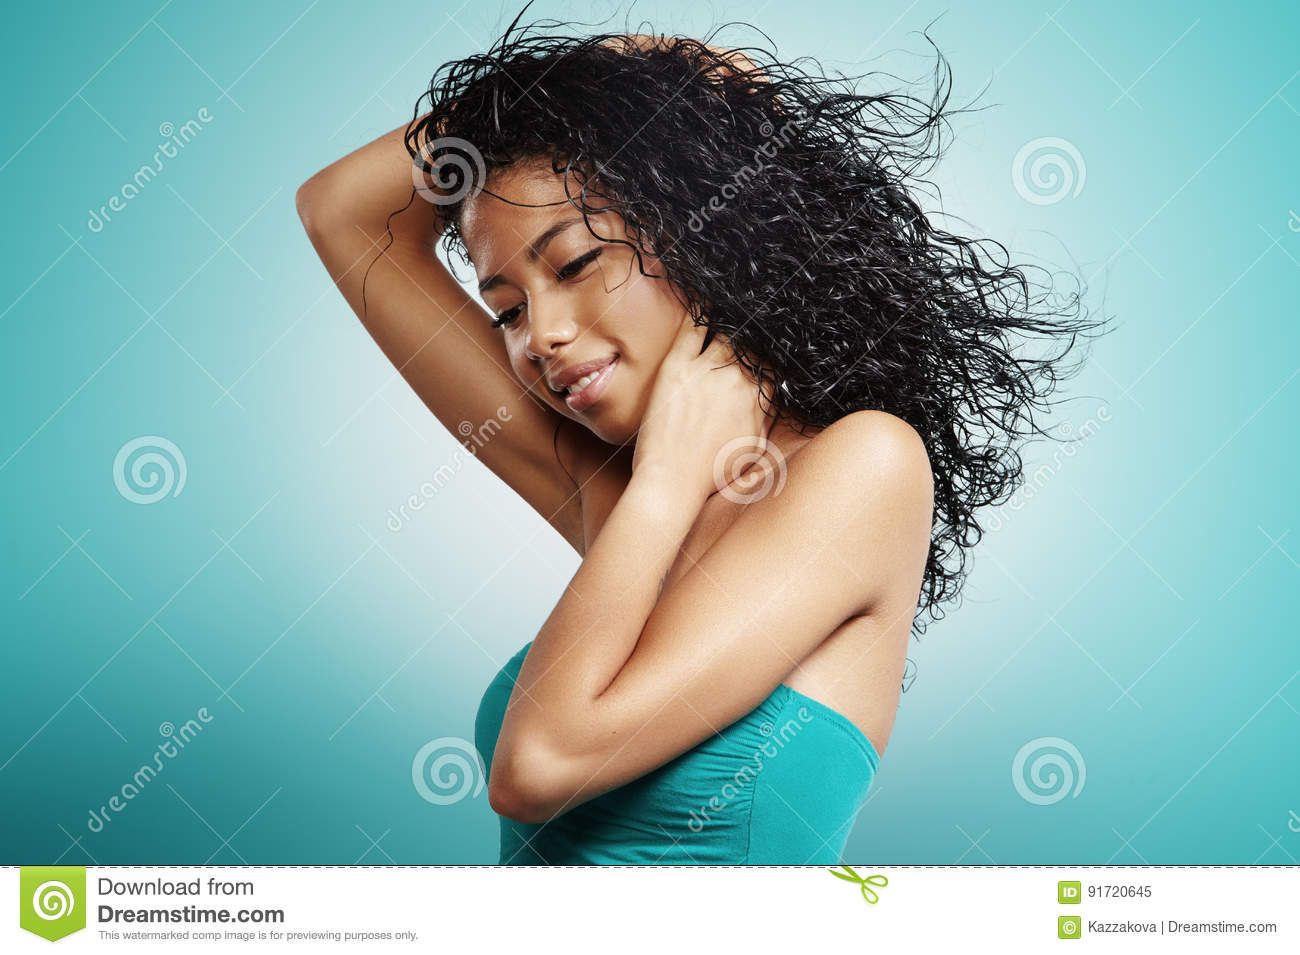 Black woman with curly hair and flying hair